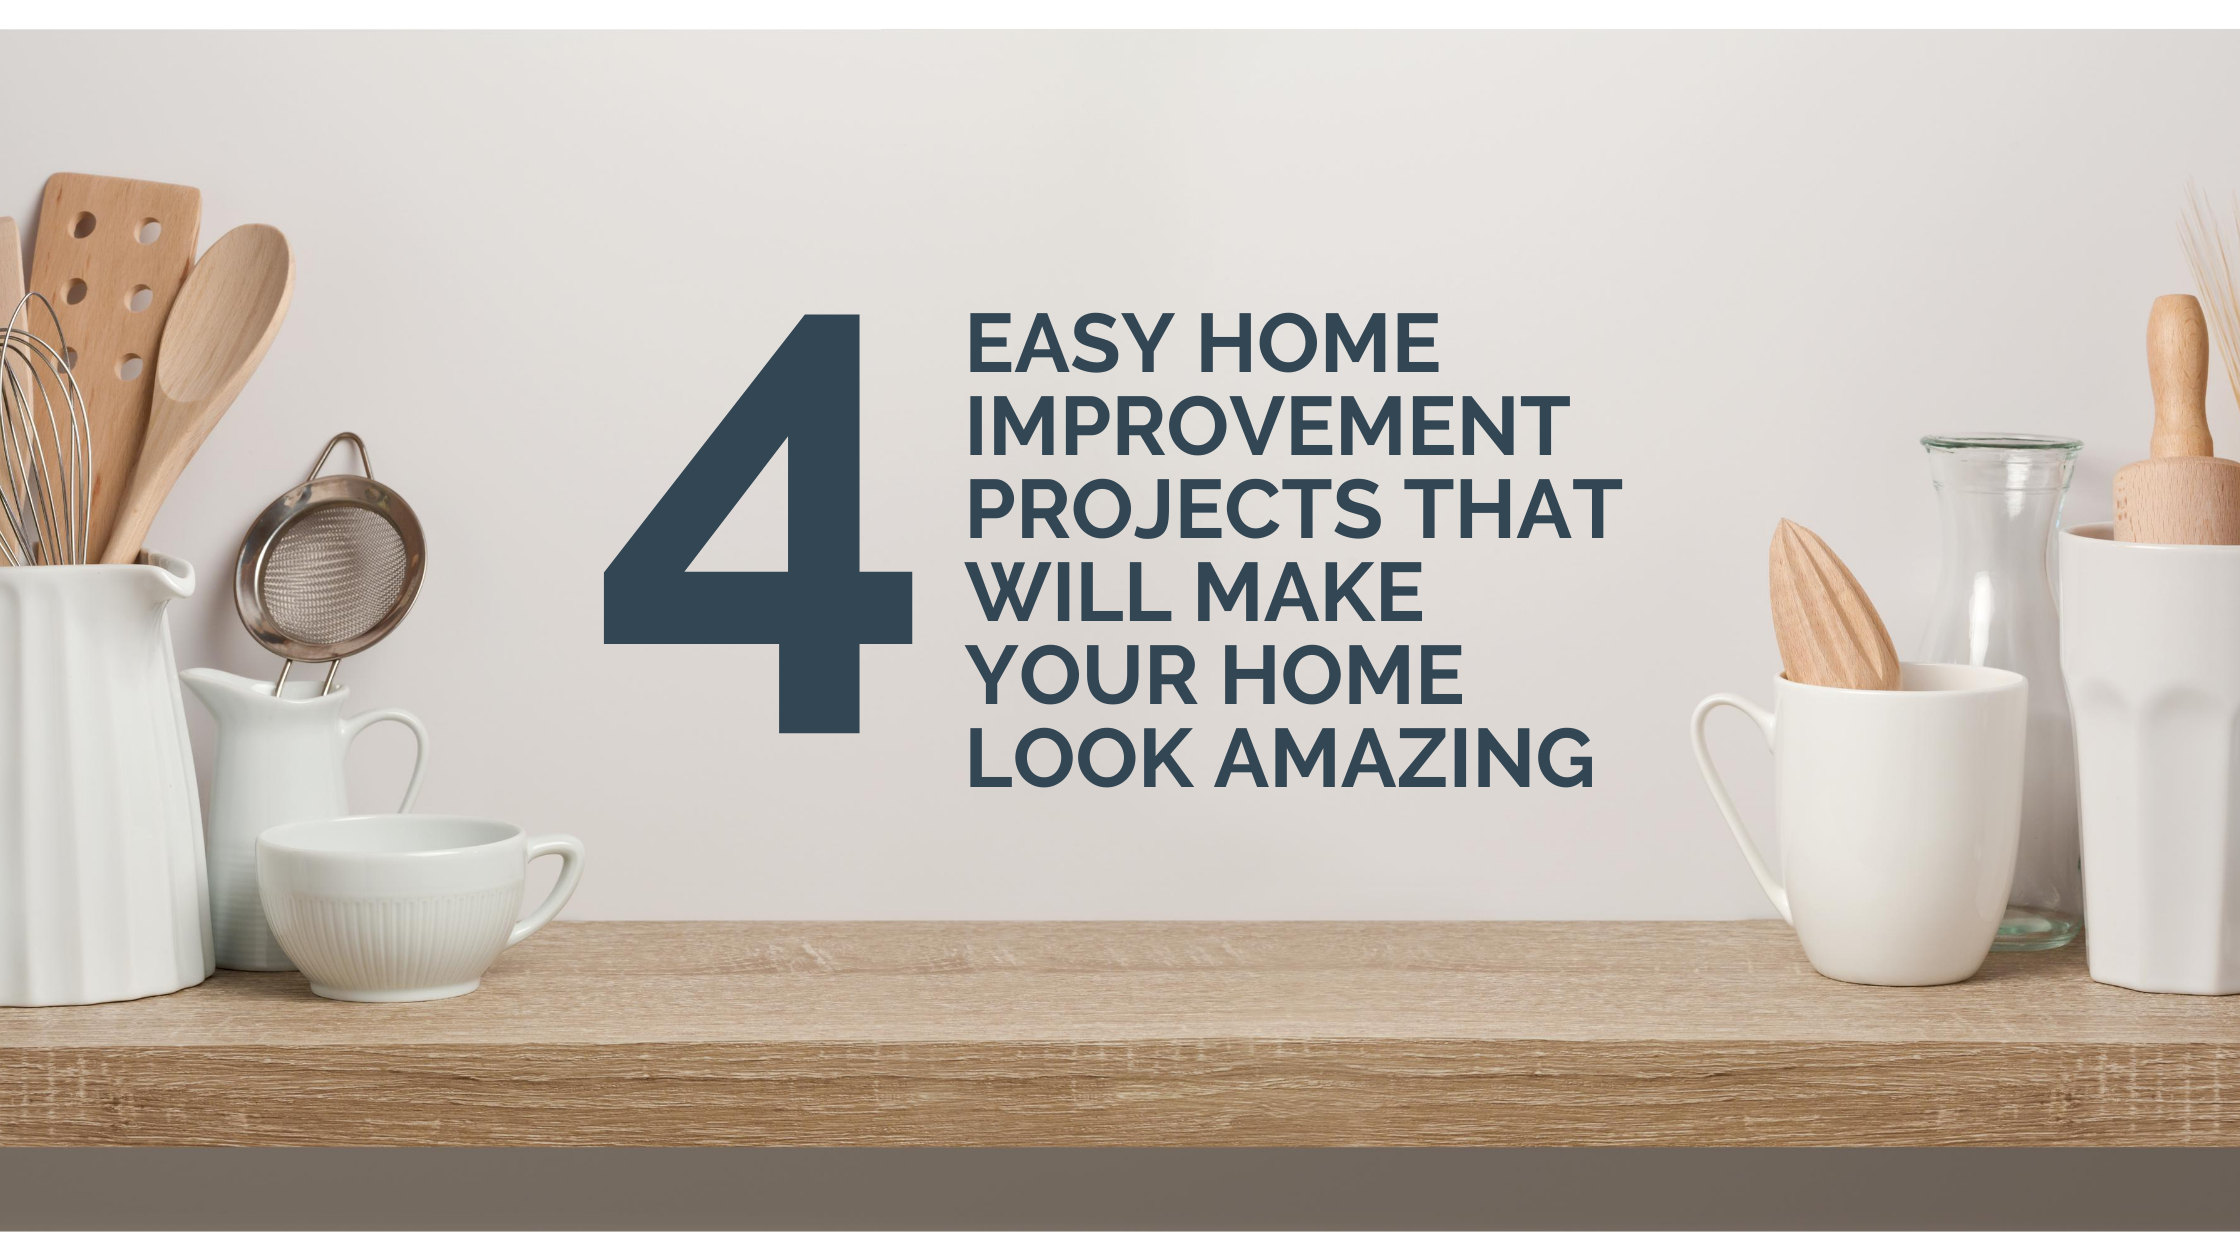 4 Easy Home Improvement Projects That Will Make Your Home Look Amazing